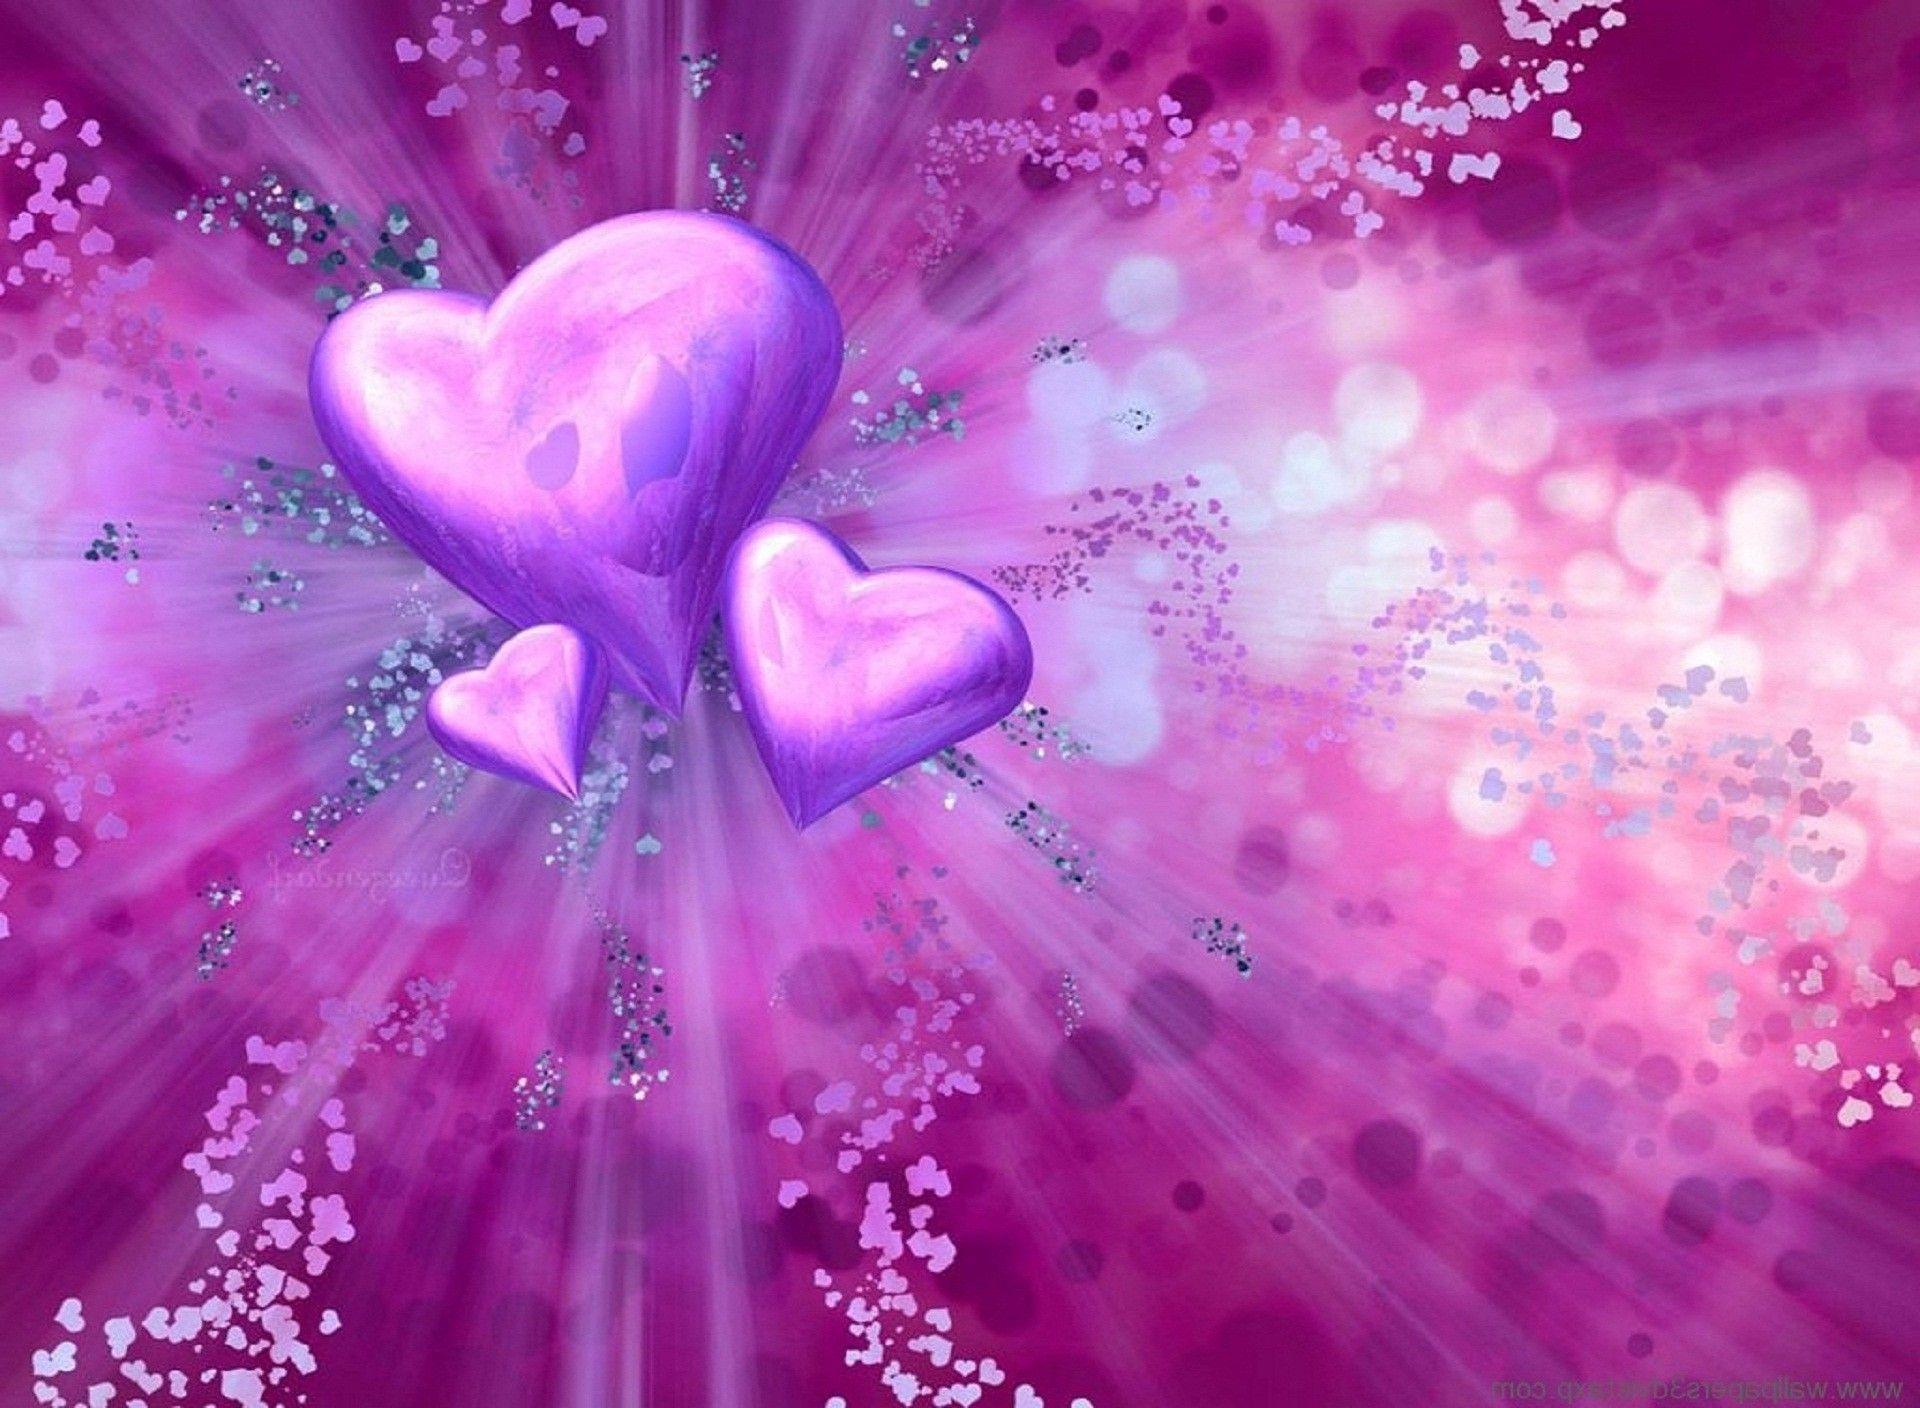 Love Wallpaper Hd 3d : Love Wallpapers 3D - Wallpaper cave